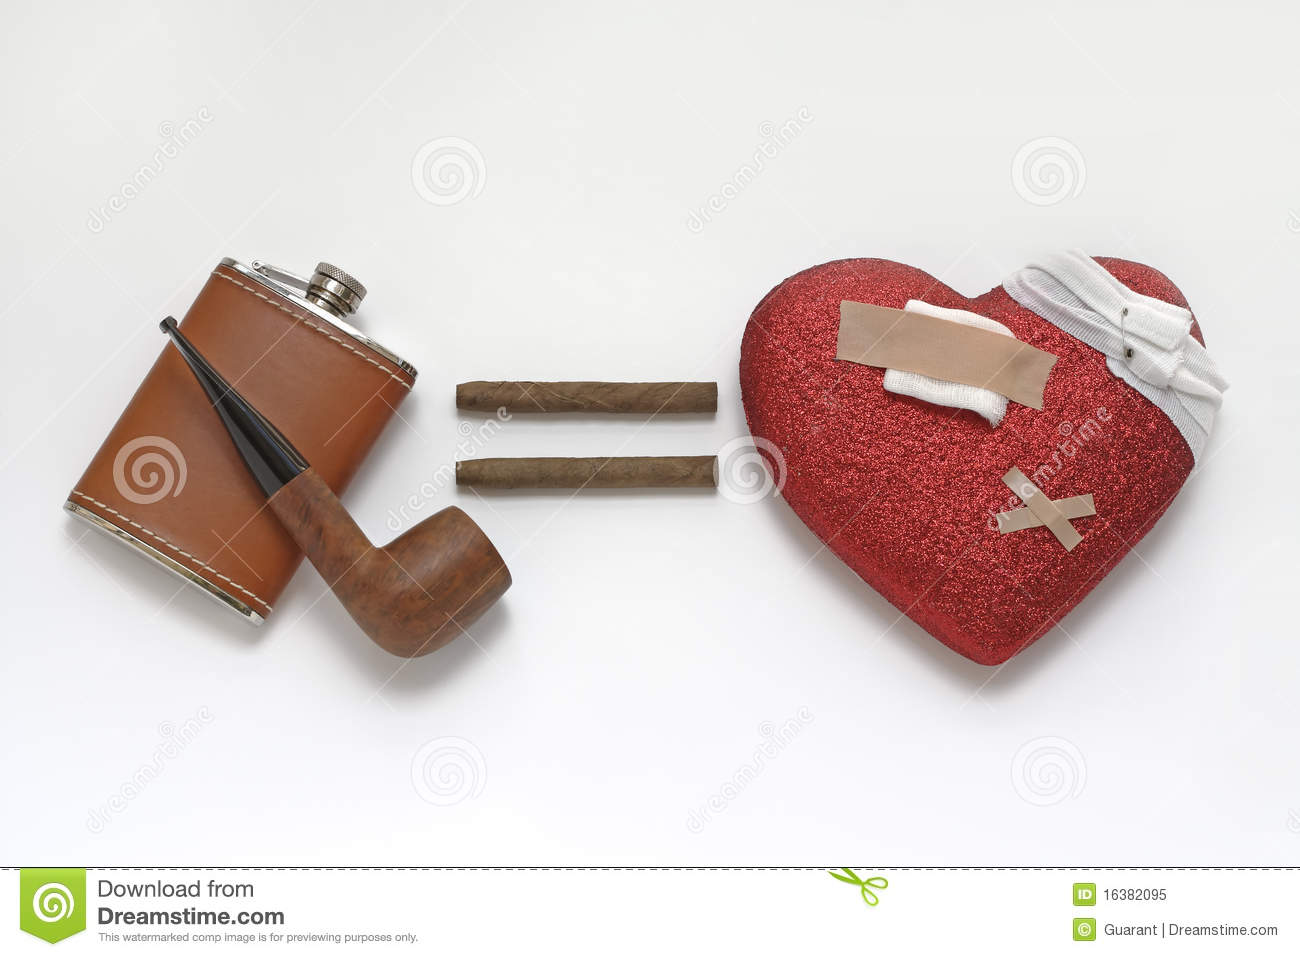 Heart problems resulting from alcohol and smoking